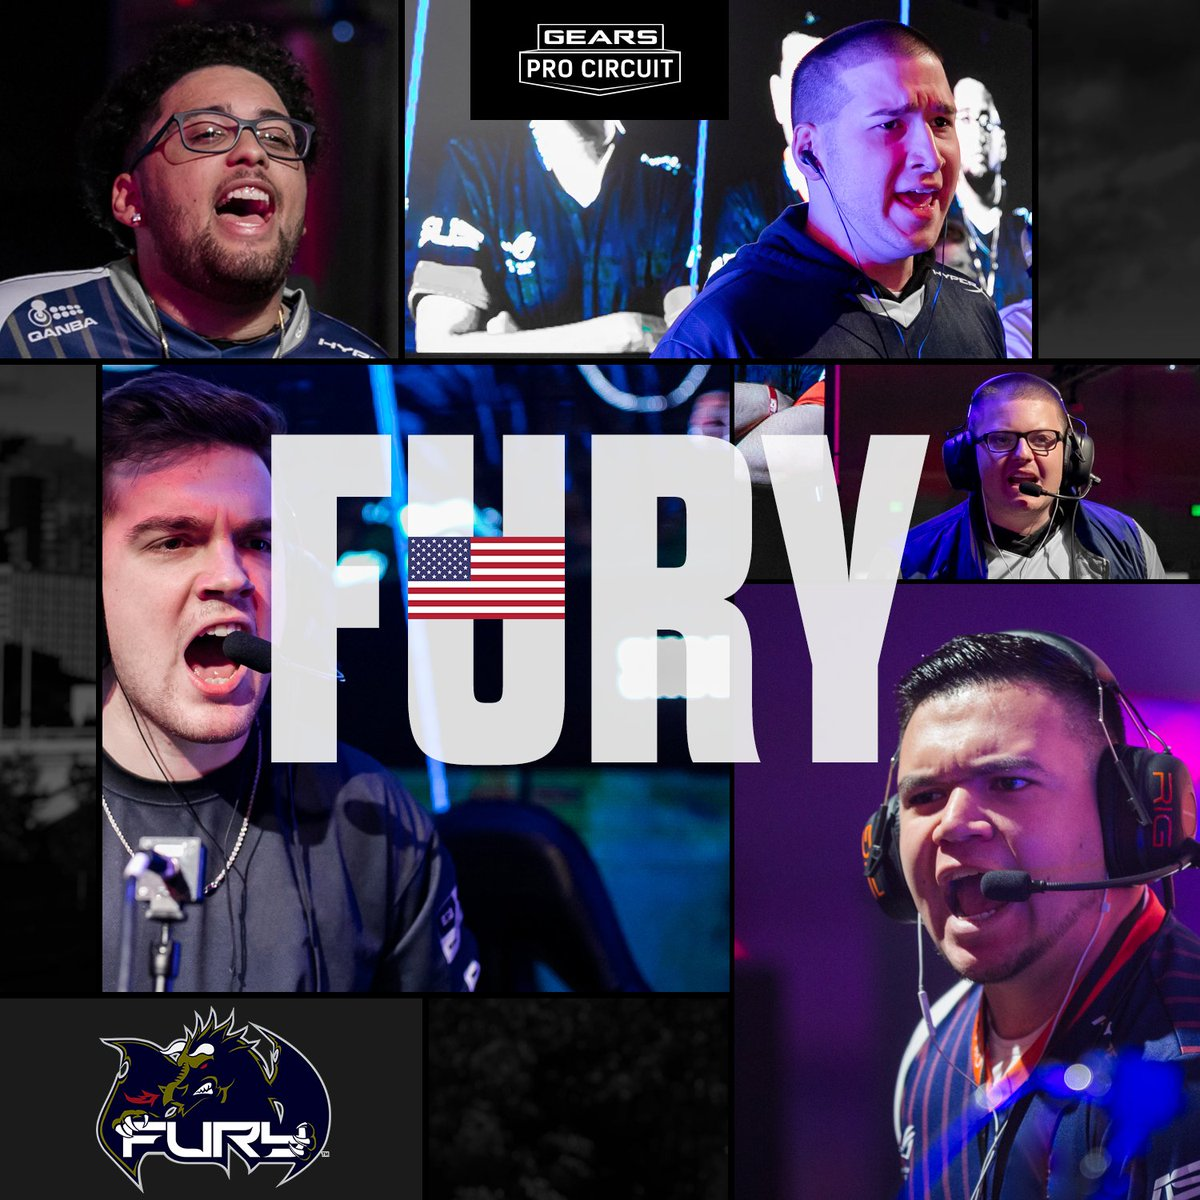 LIVE NOW: Young guns @Hive_gg look to avenge their San Diego loss to Fury on main stage.  Tune into http://live.gearsofwar.com now and don't miss your chance to claim the Animal Longshot